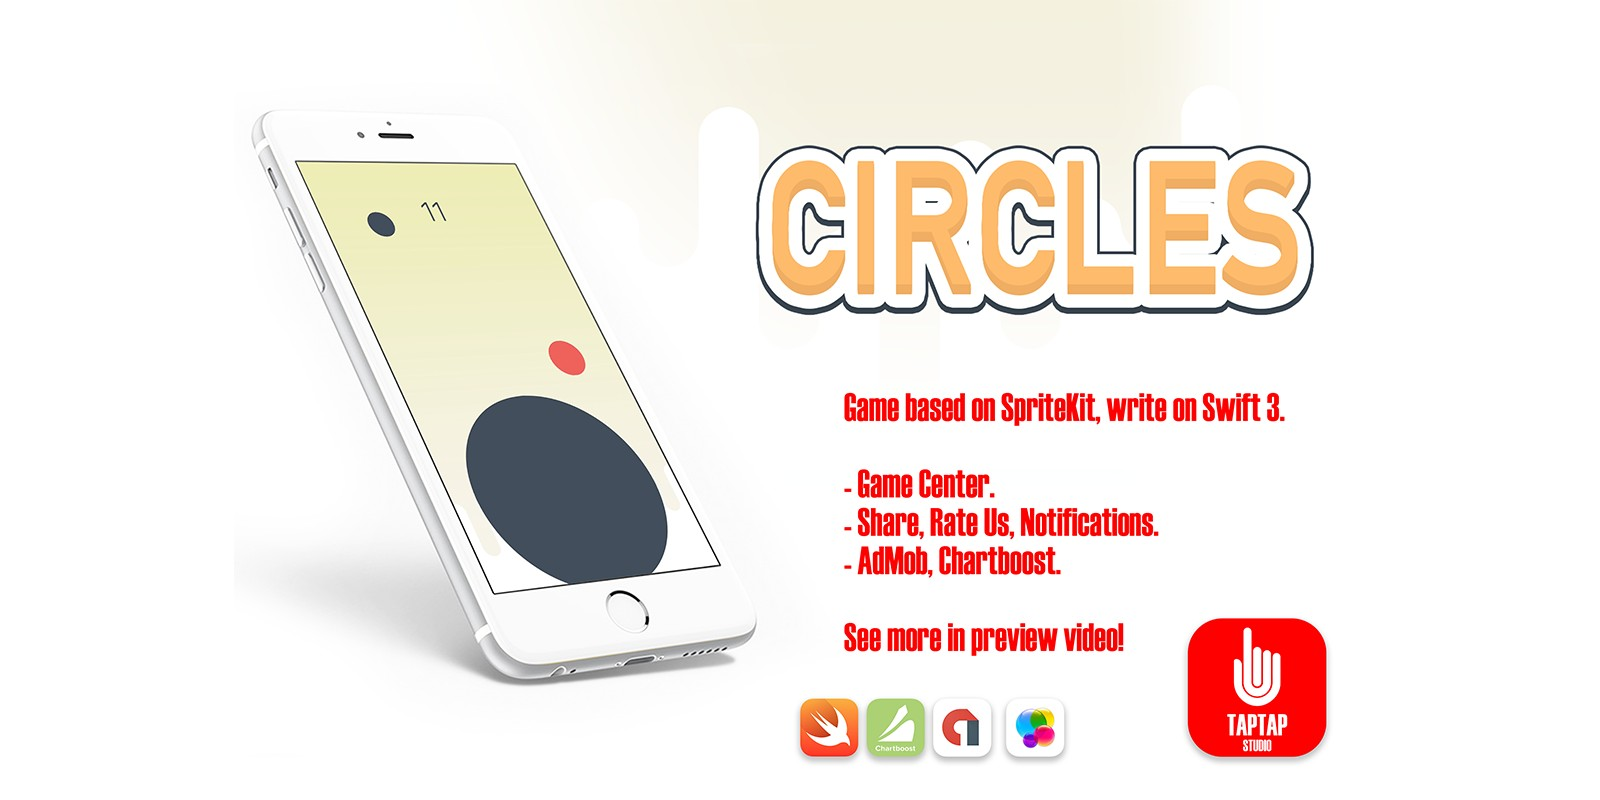 Circles - iOS Xcode Source Code